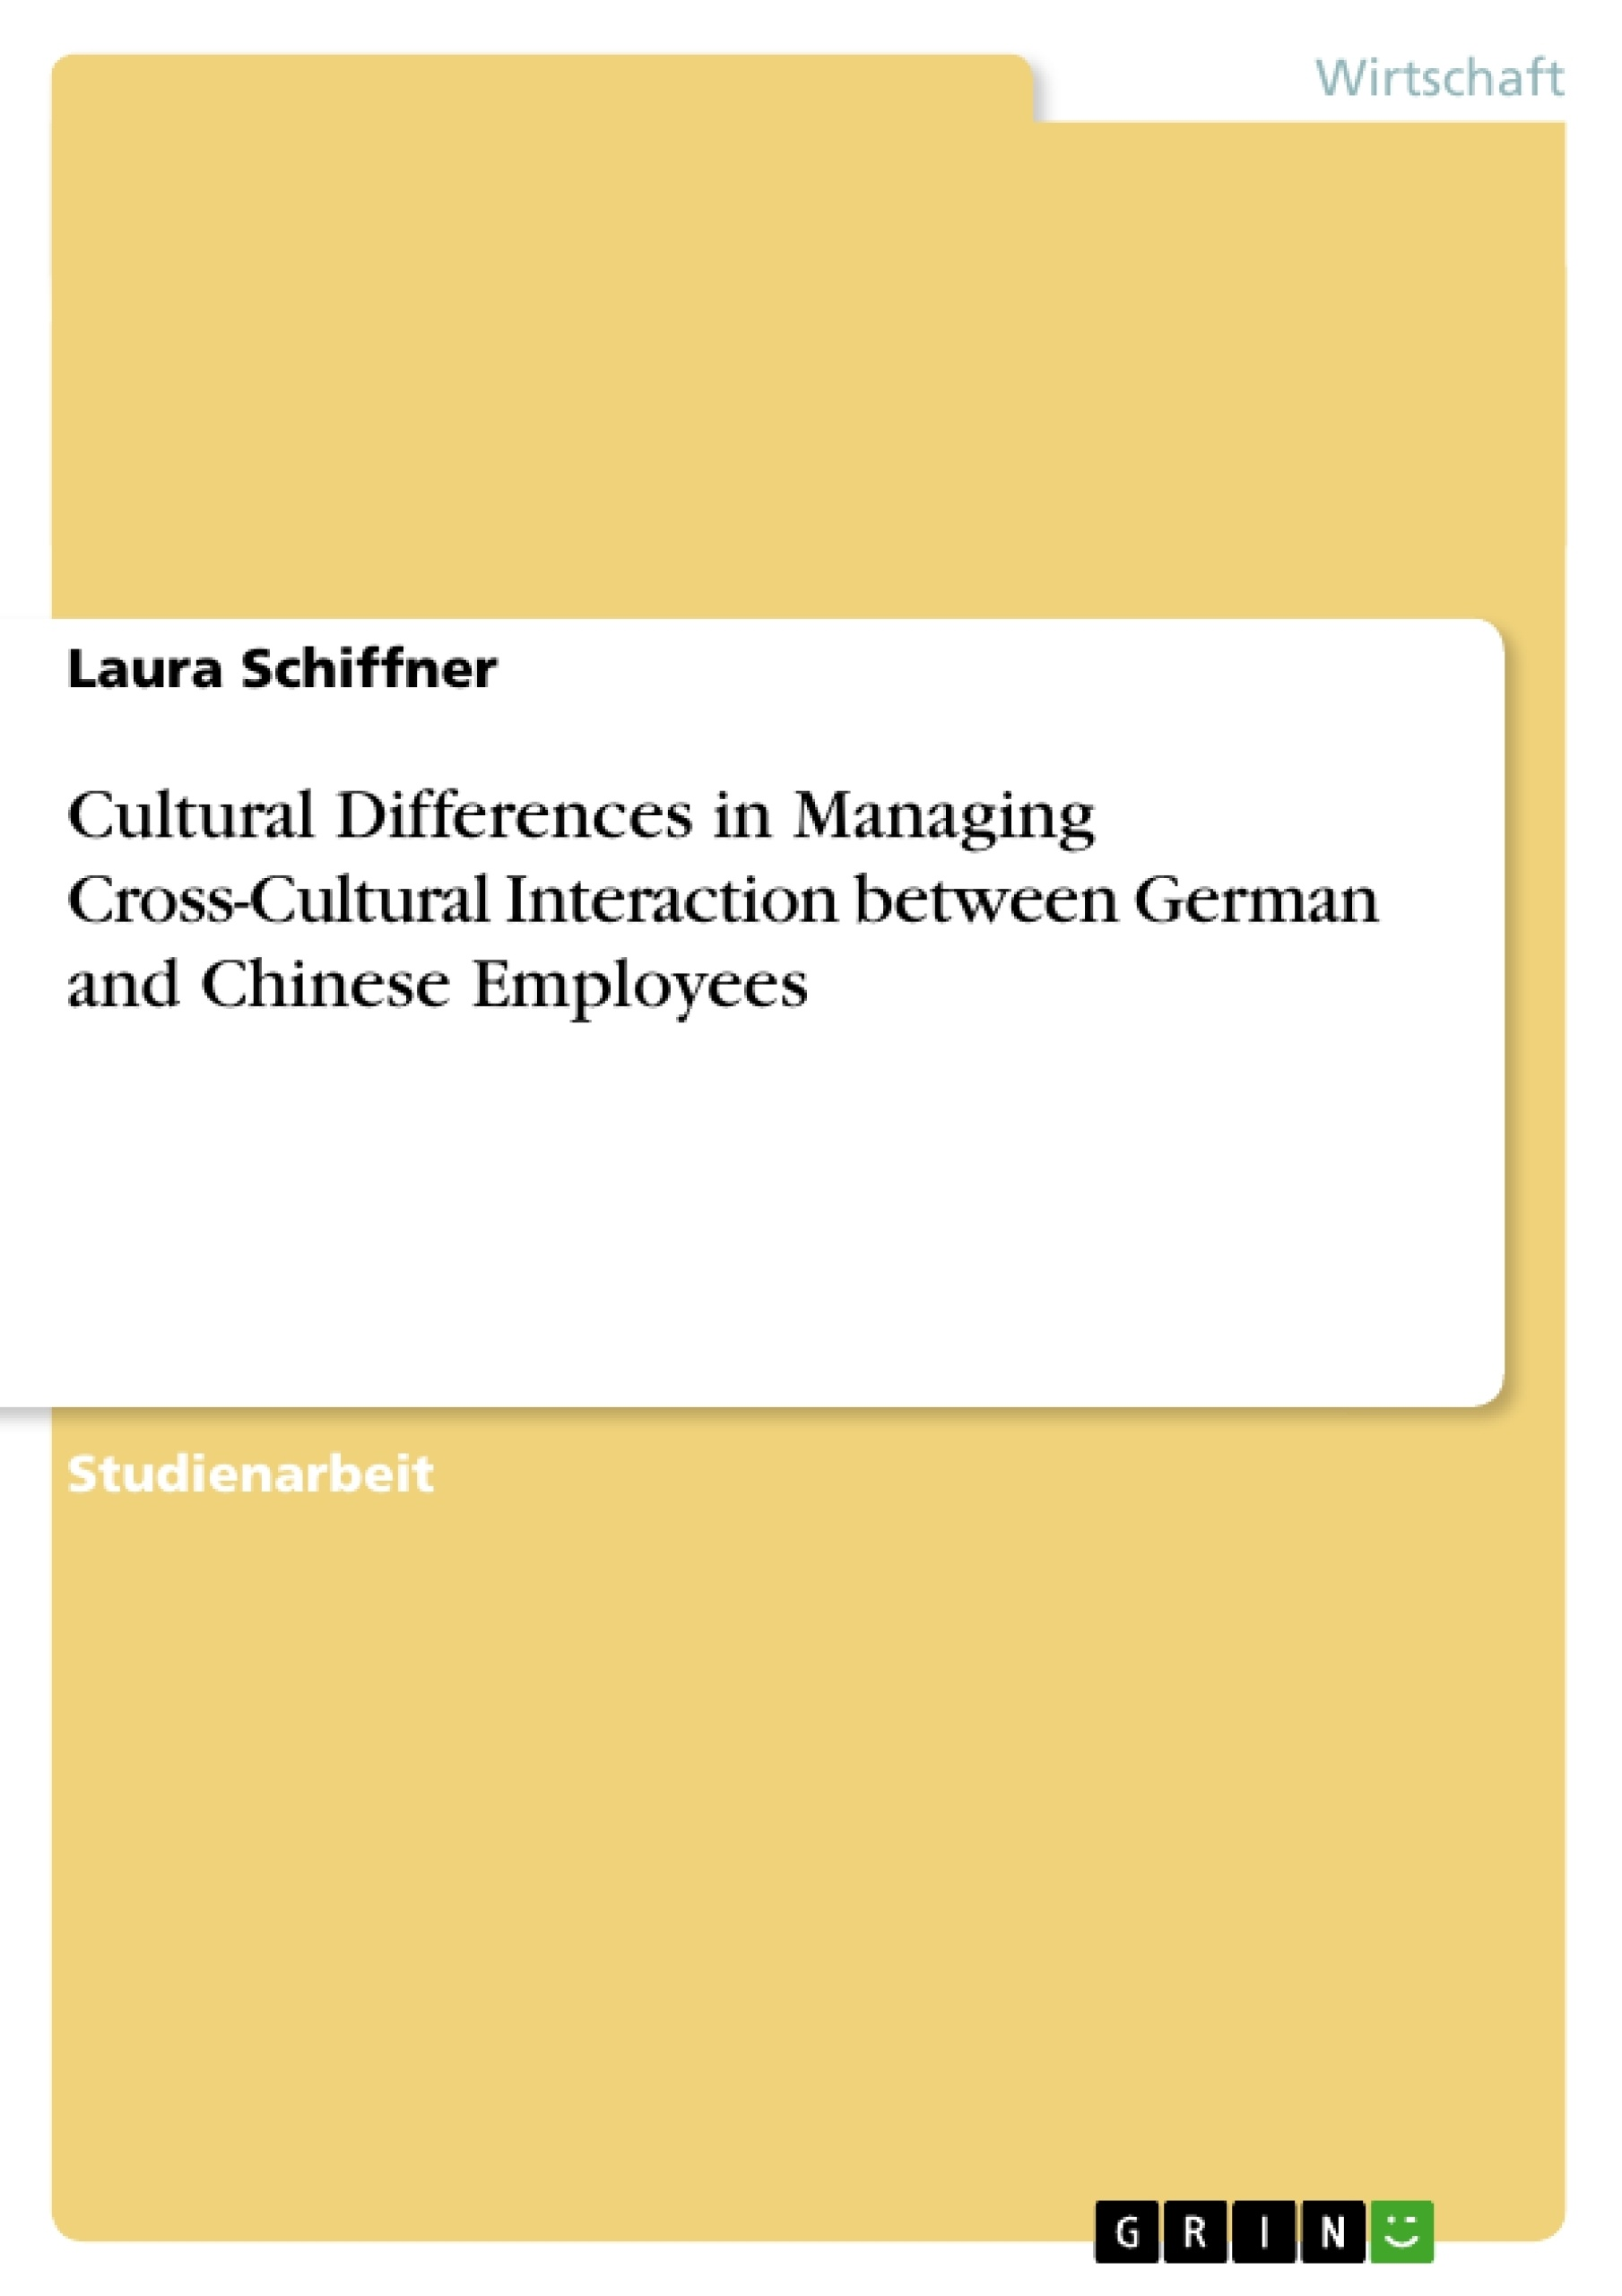 Titel: Cultural Differences in Managing Cross-Cultural Interaction between German and Chinese Employees